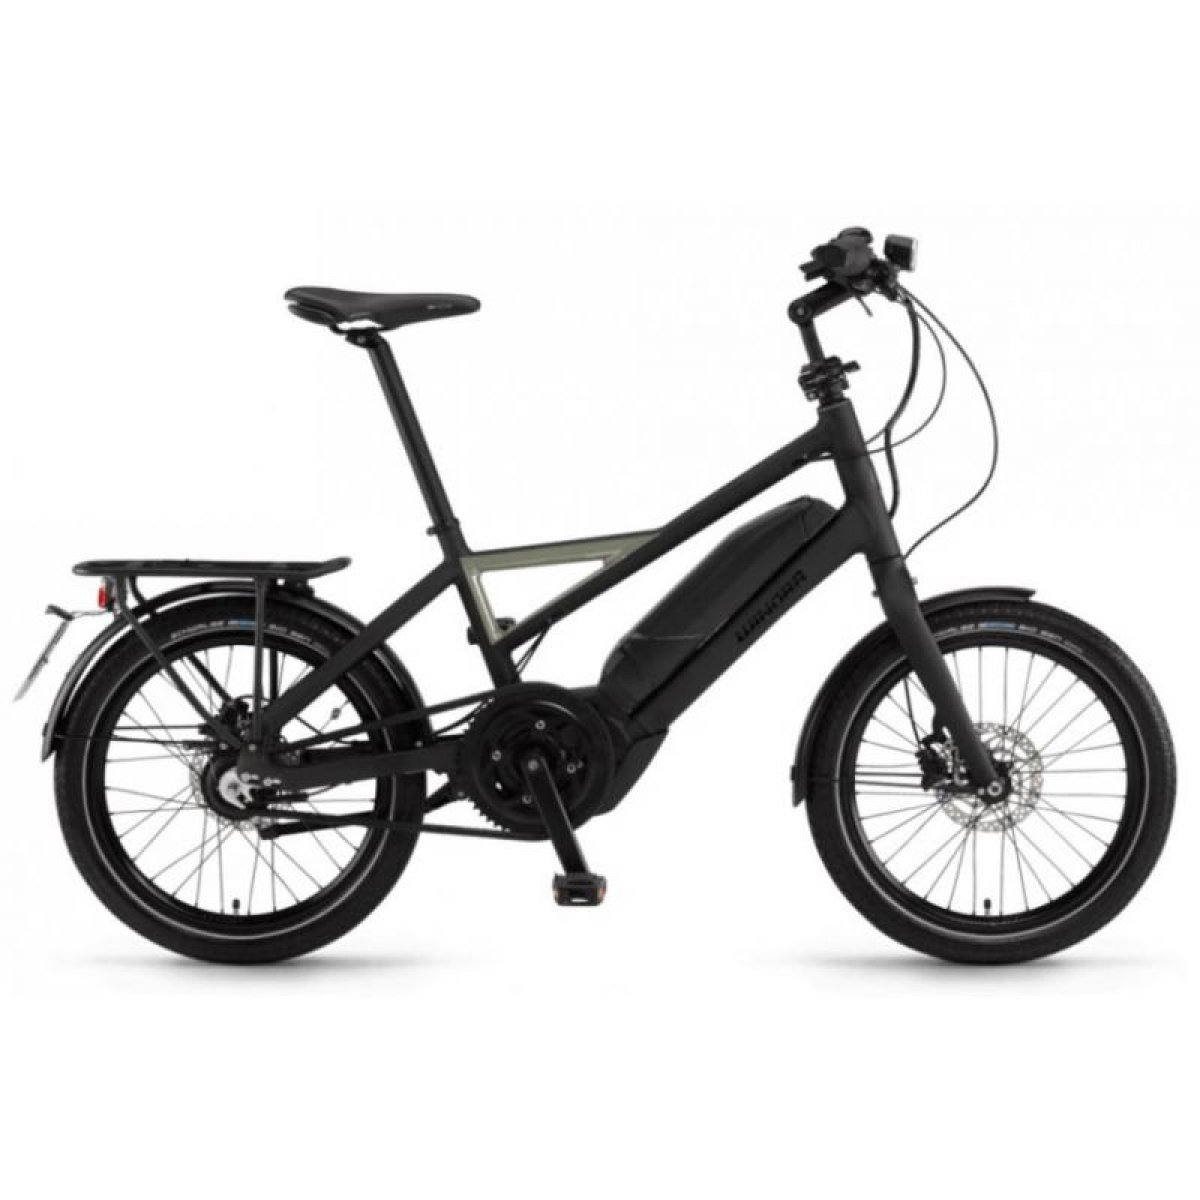 Велосипед Winora radius speed 500Wh